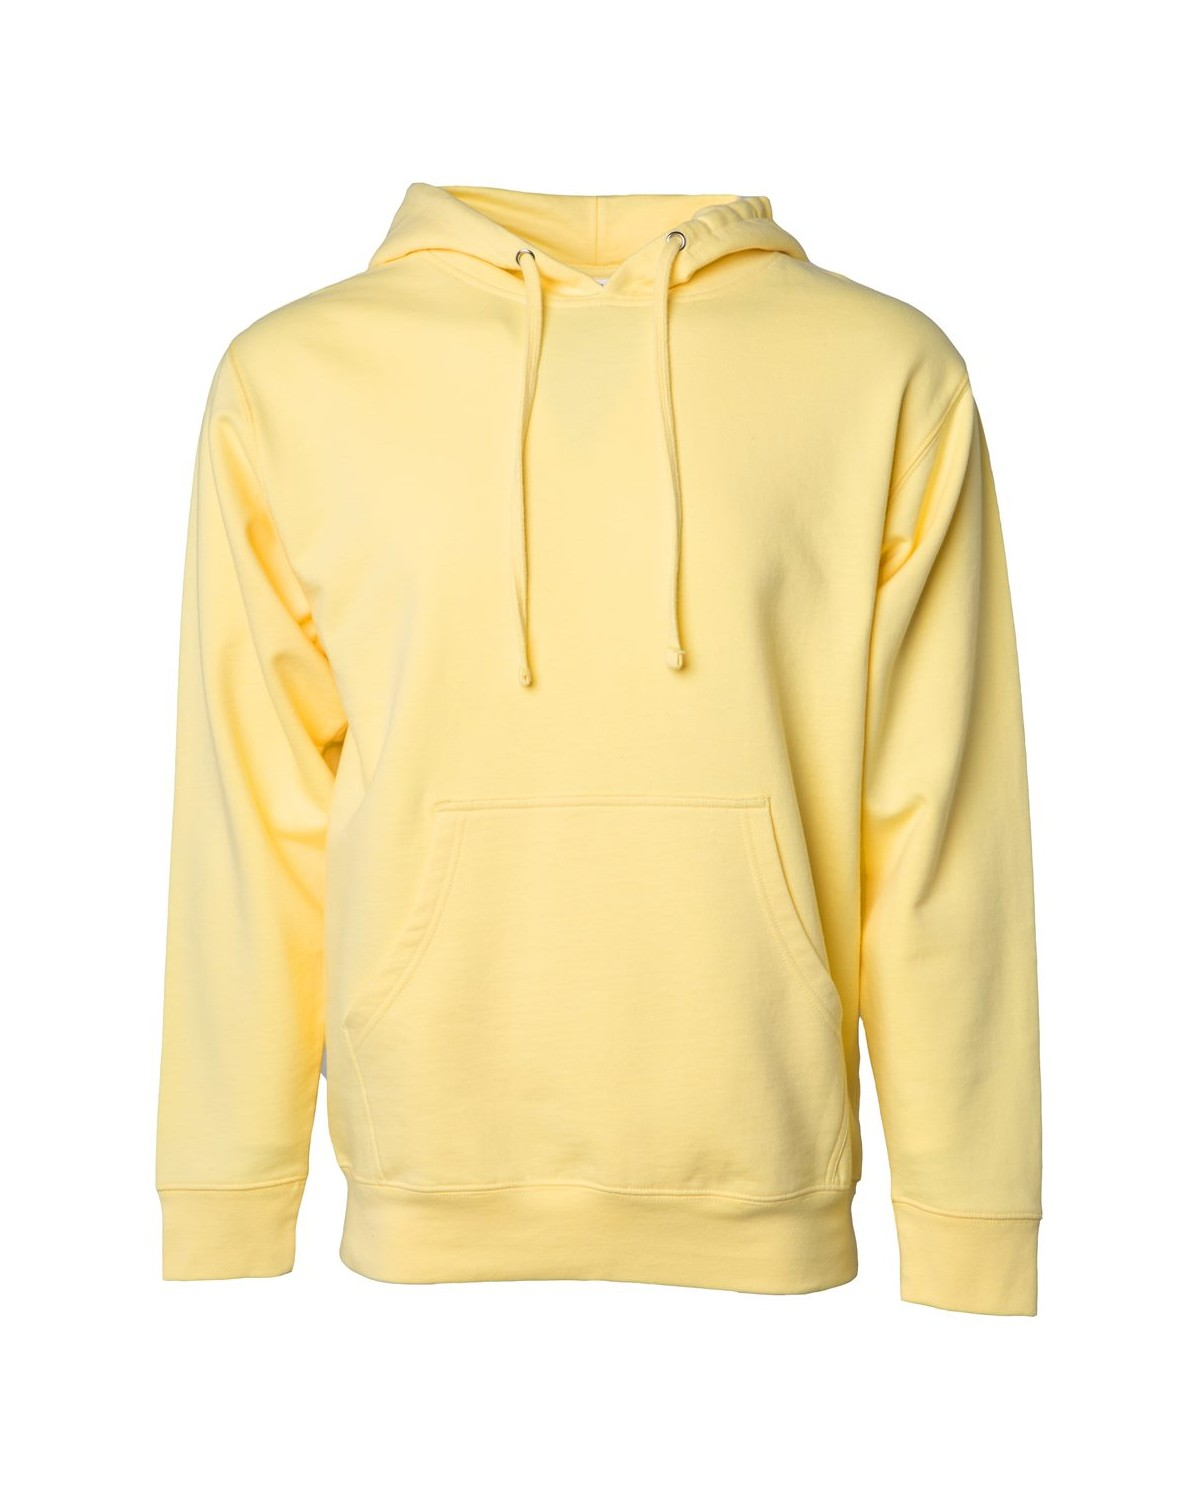 SS4500 Independent Trading Co. LIGHT YELLOW